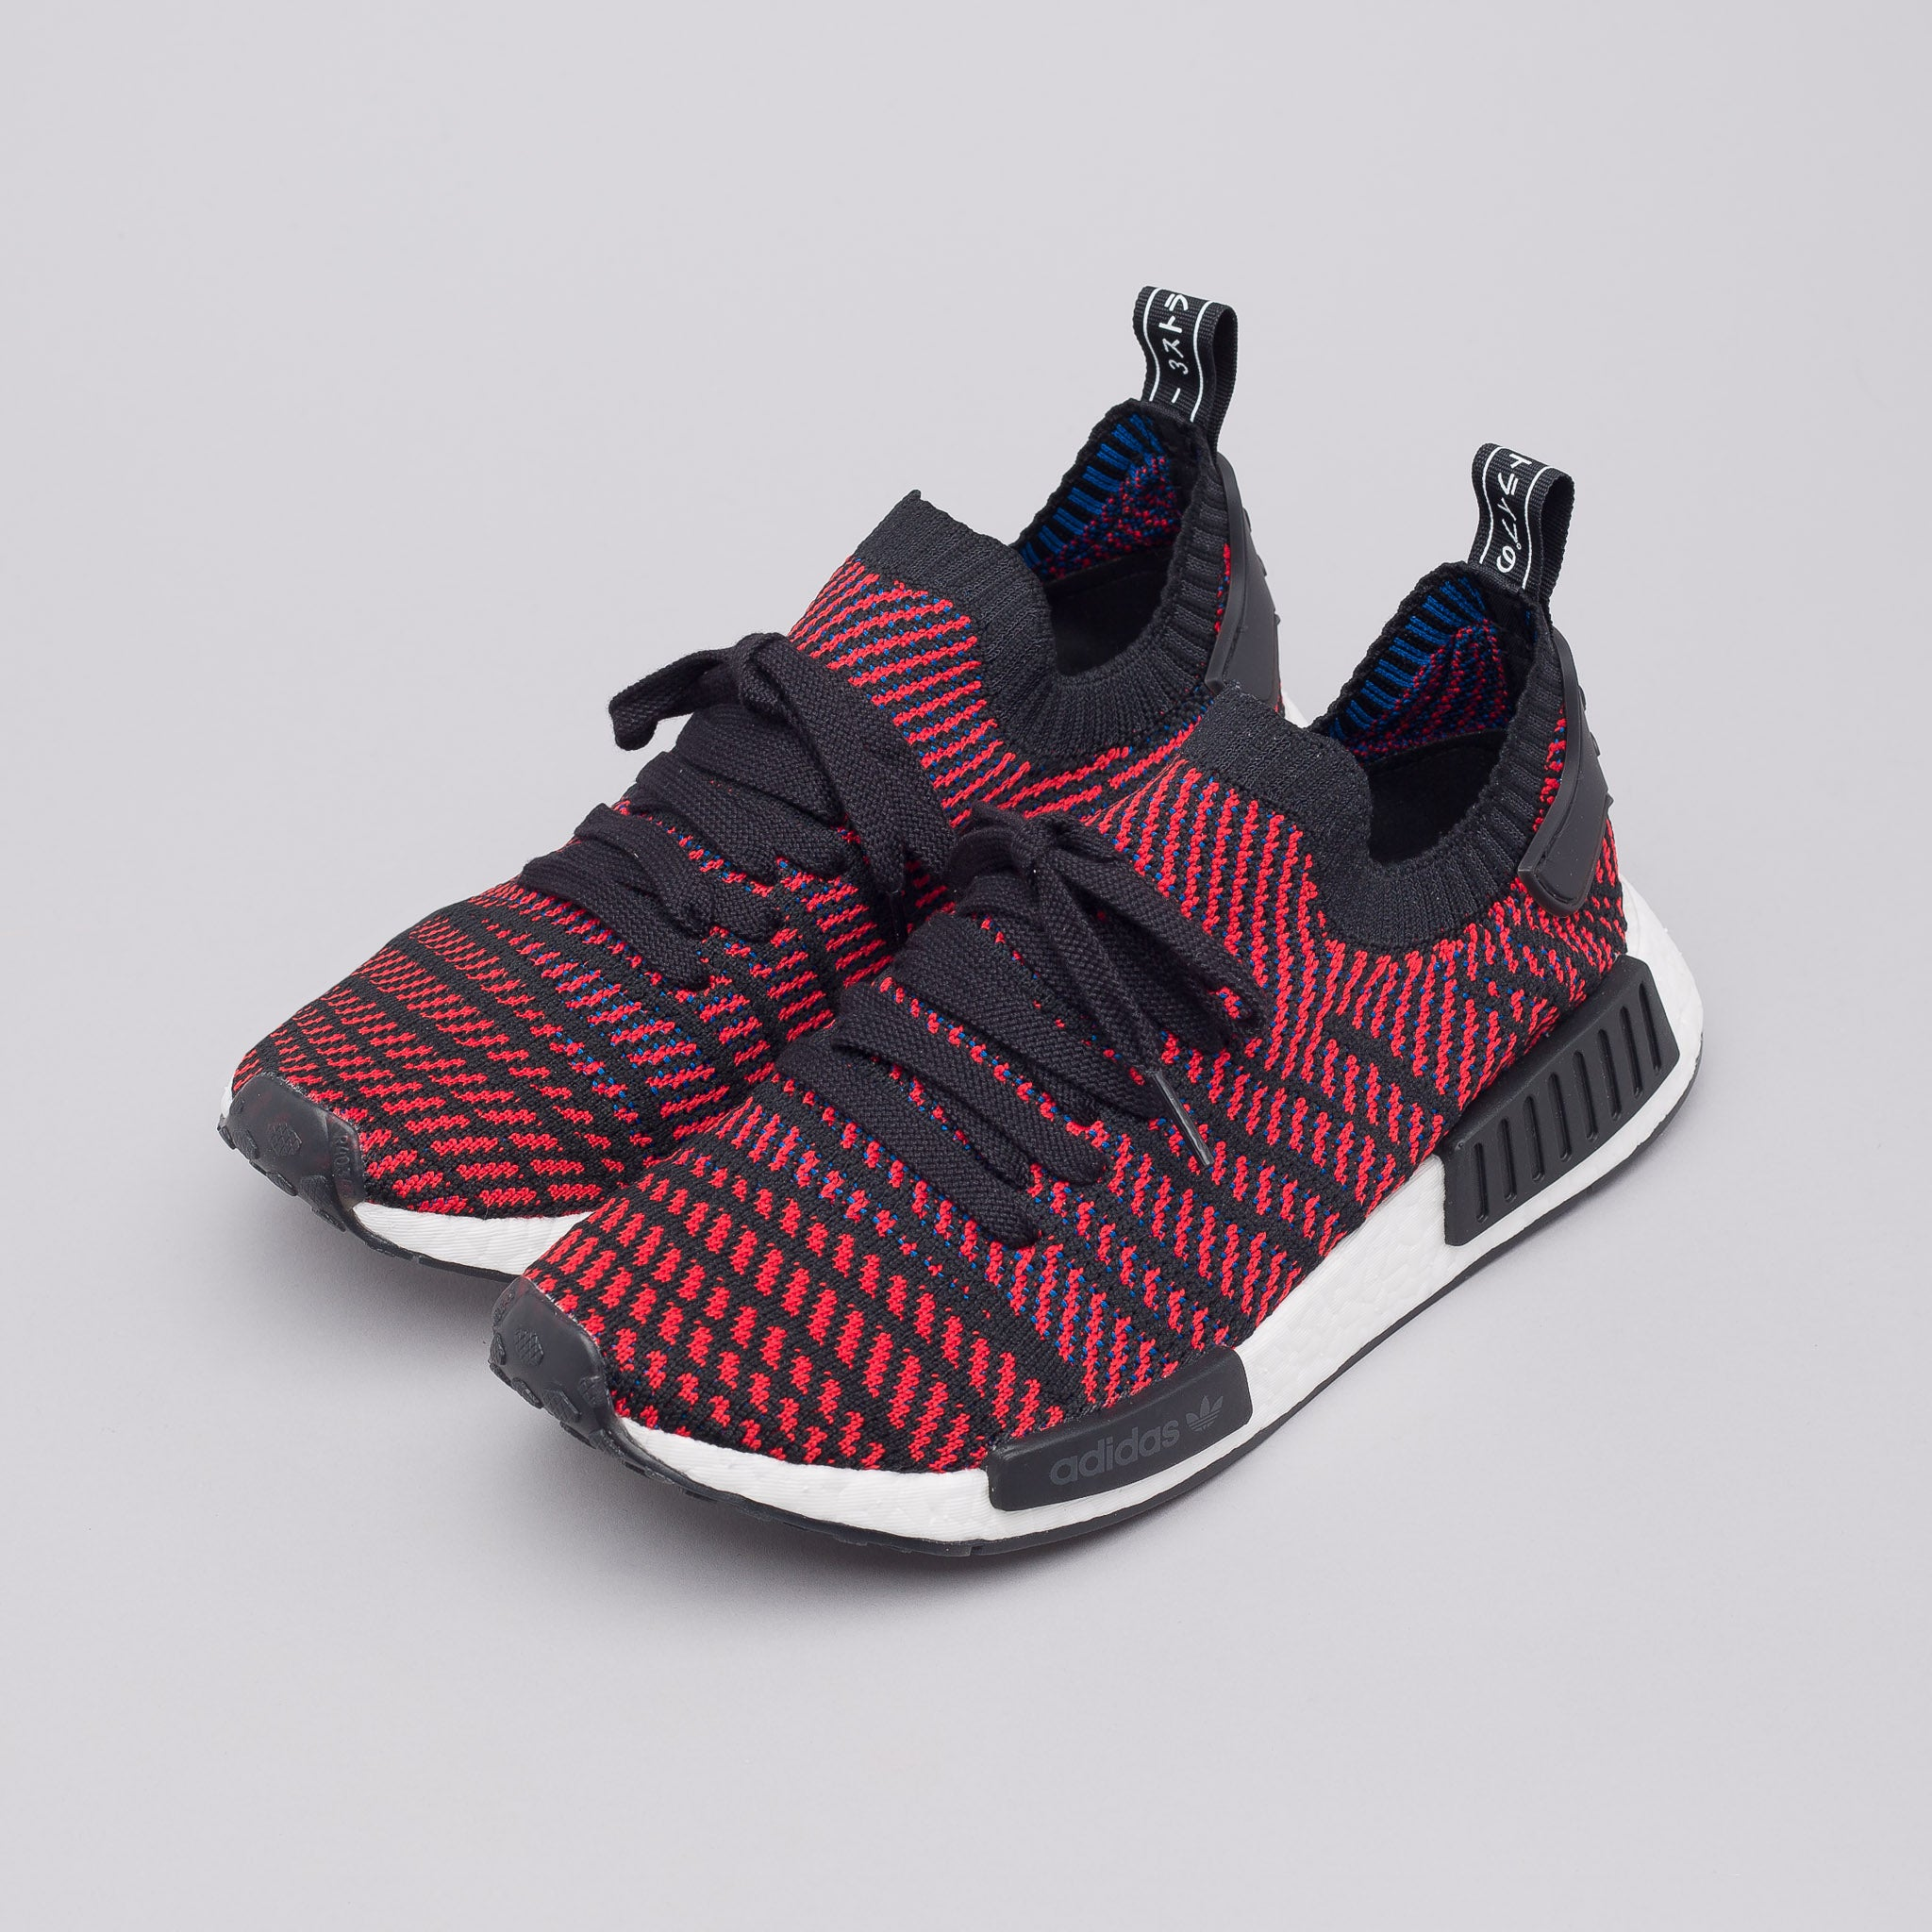 adidas NMD R1 Running Shoes Collection for Women 7 Ba7752